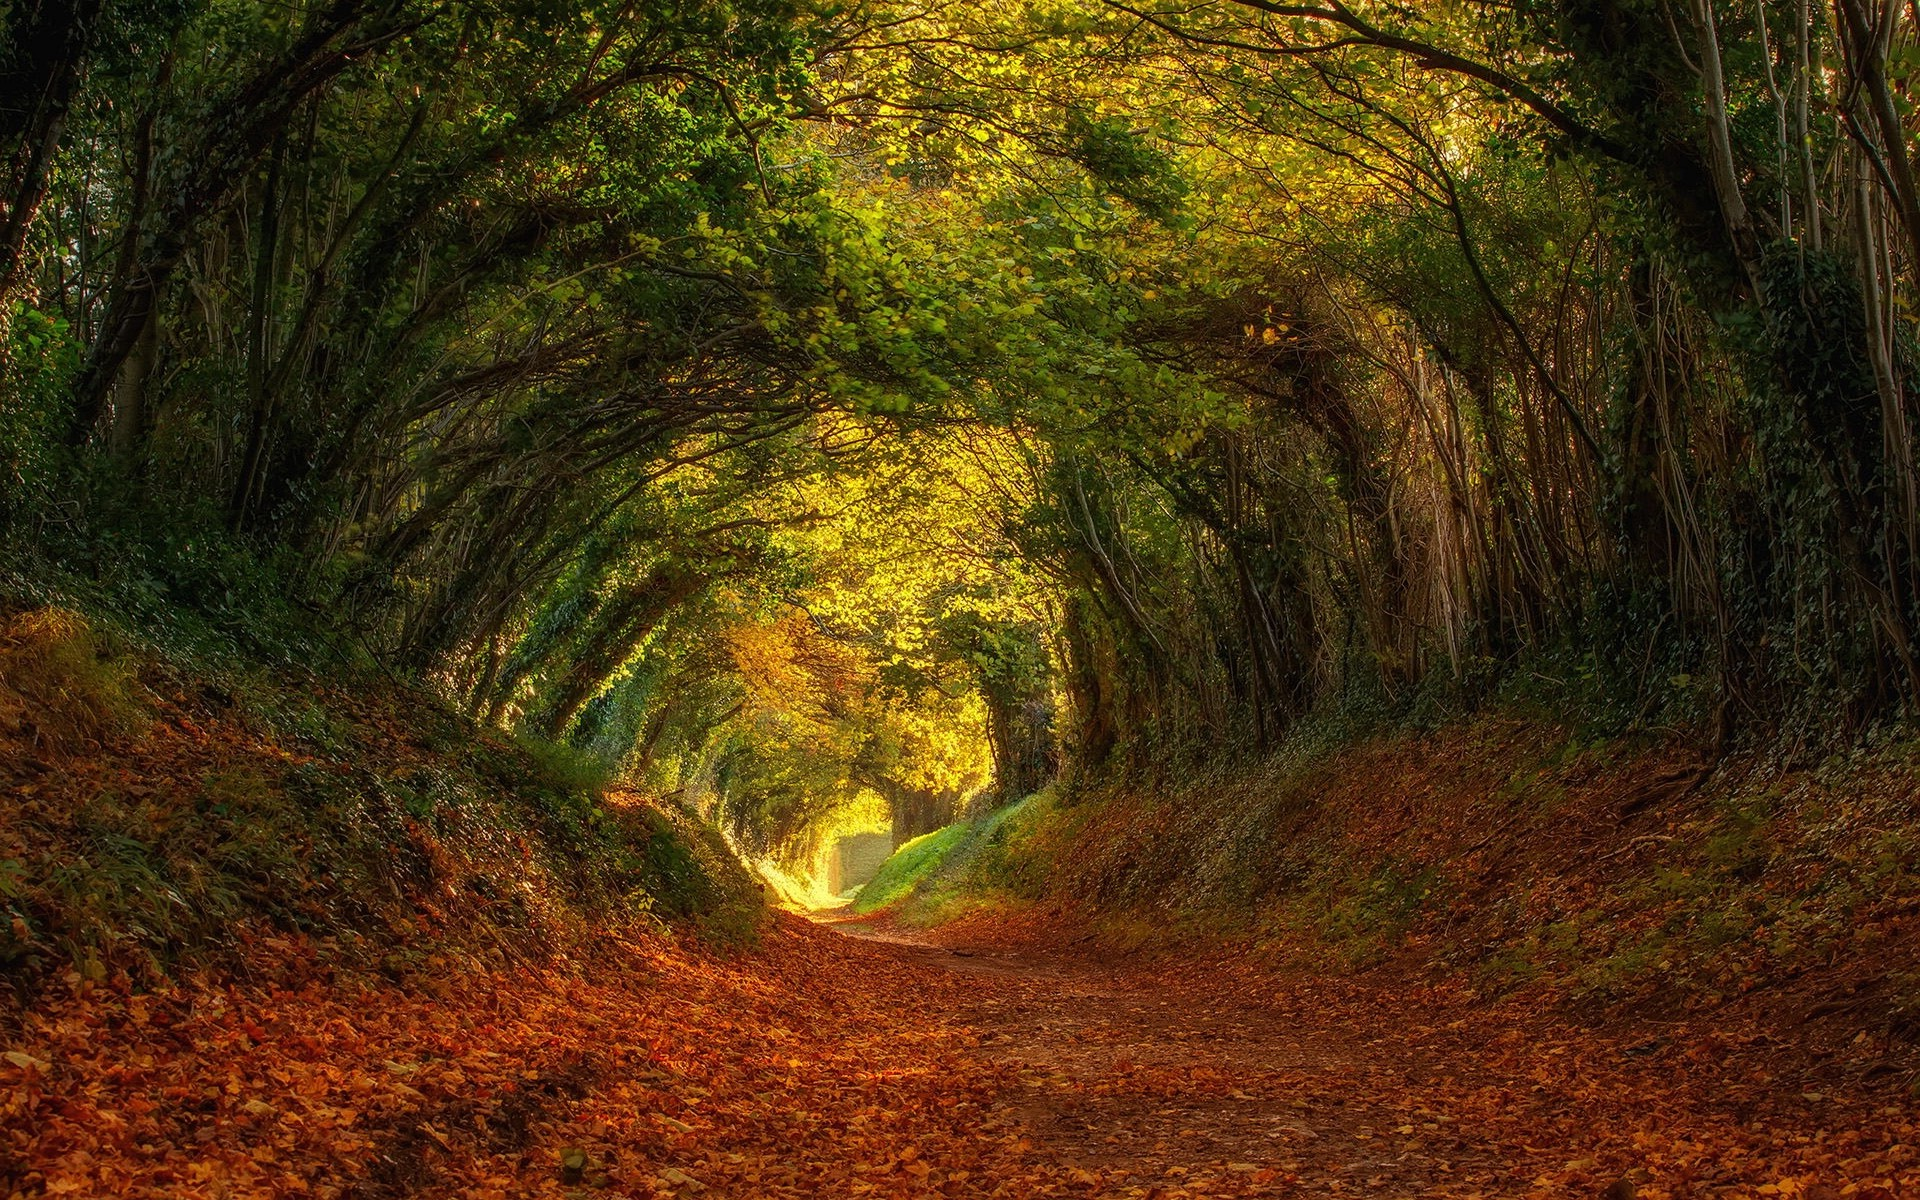 Fall In Love Leaf Wallpaper Landscape Nature Trees Leaves Shrubs Tunnel Dry